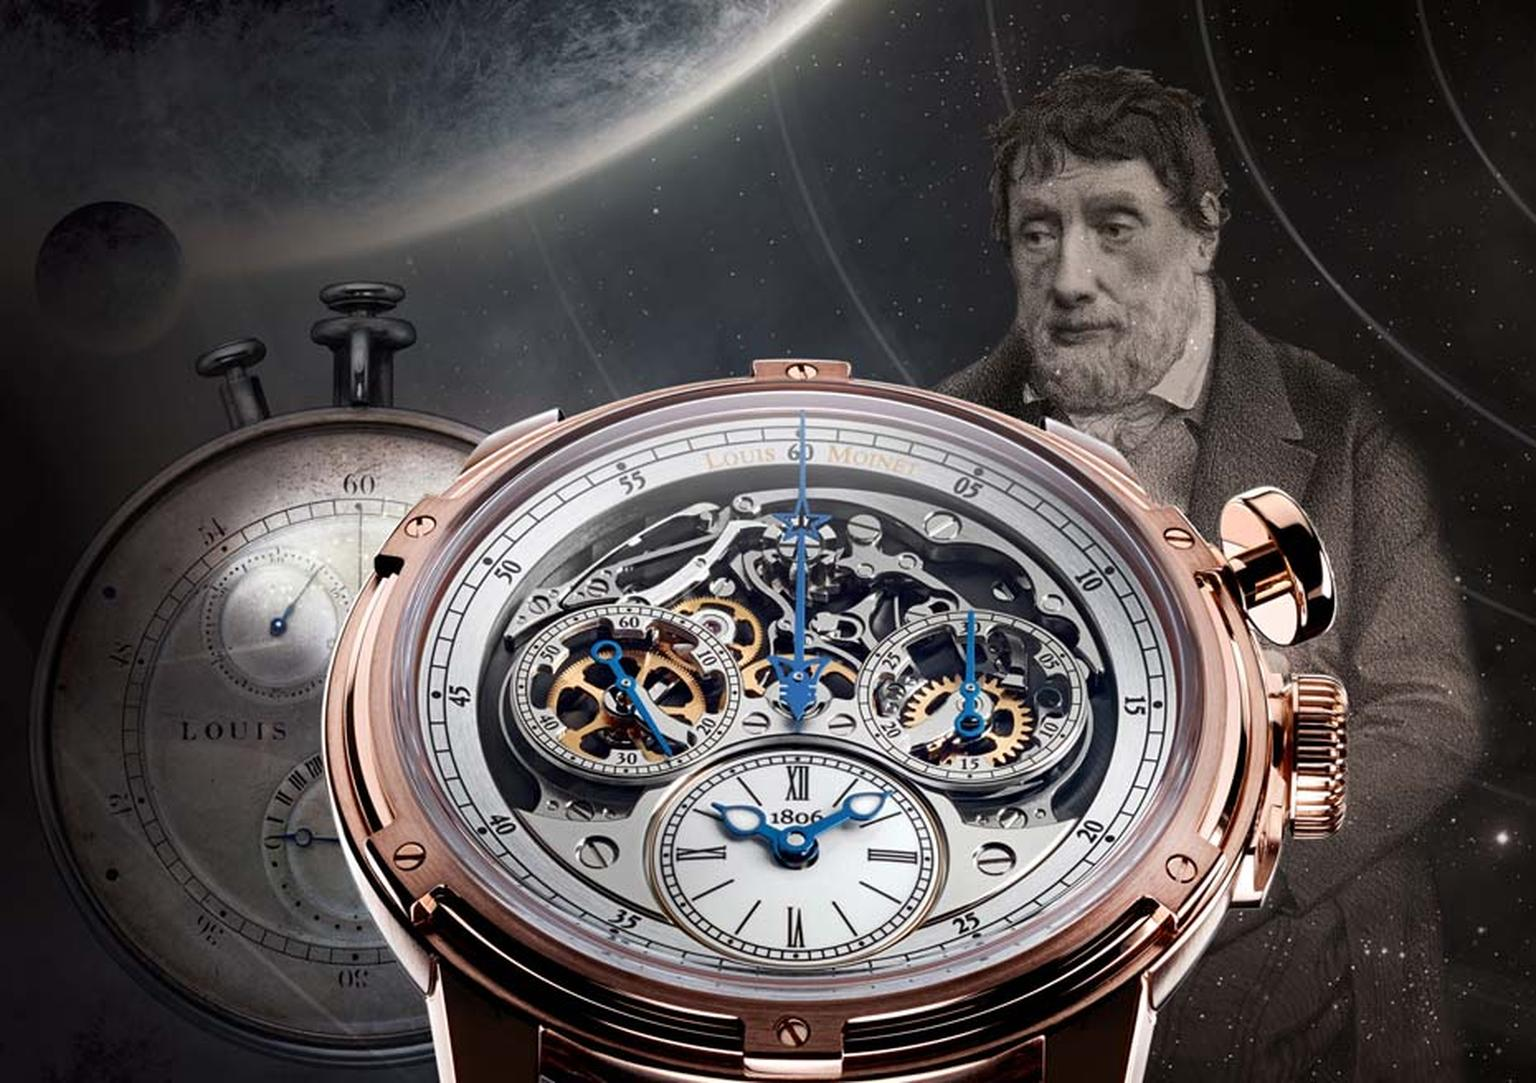 The Louis Moinet Memoris chronograph stands at a crossroads for the brand, celebrating the bi-centenary of the world's first chronograph, invented by Louis Moinet in 1816, and the brand's rebirth a decade ago in the hands of Jean-Marie Schaller.